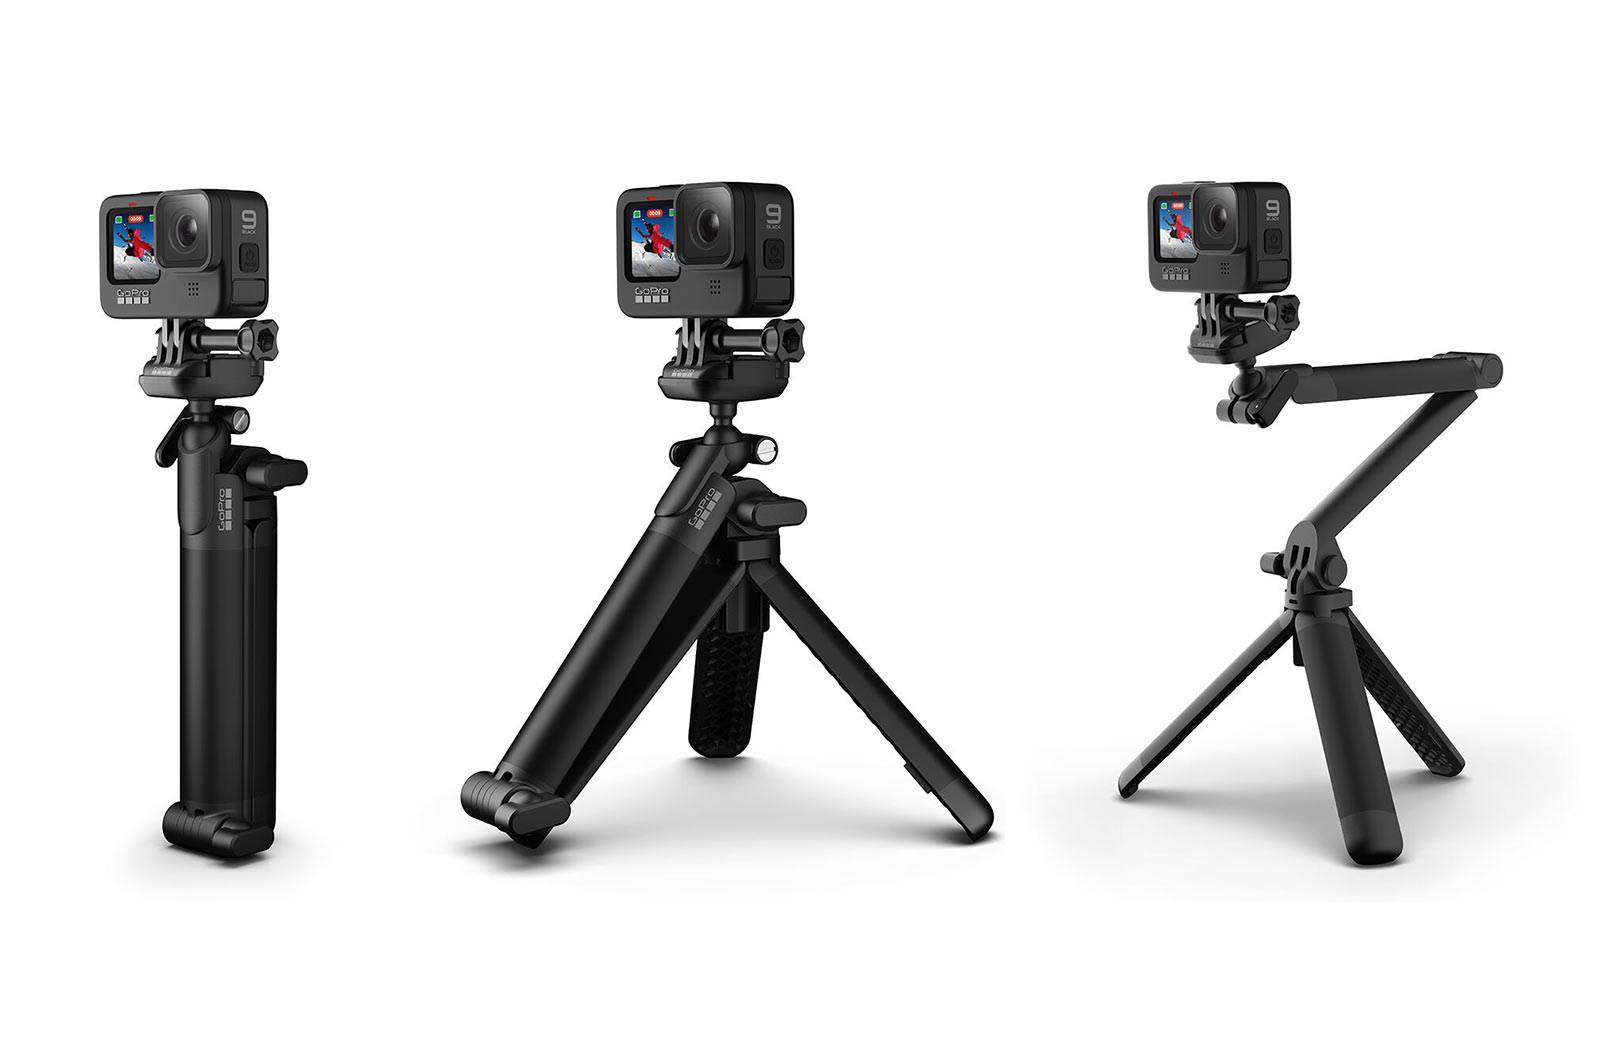 New GoPro 3-Way 2.0 grip folds into some interesting positions, new backpack looks surprisingly good - Bikerumor